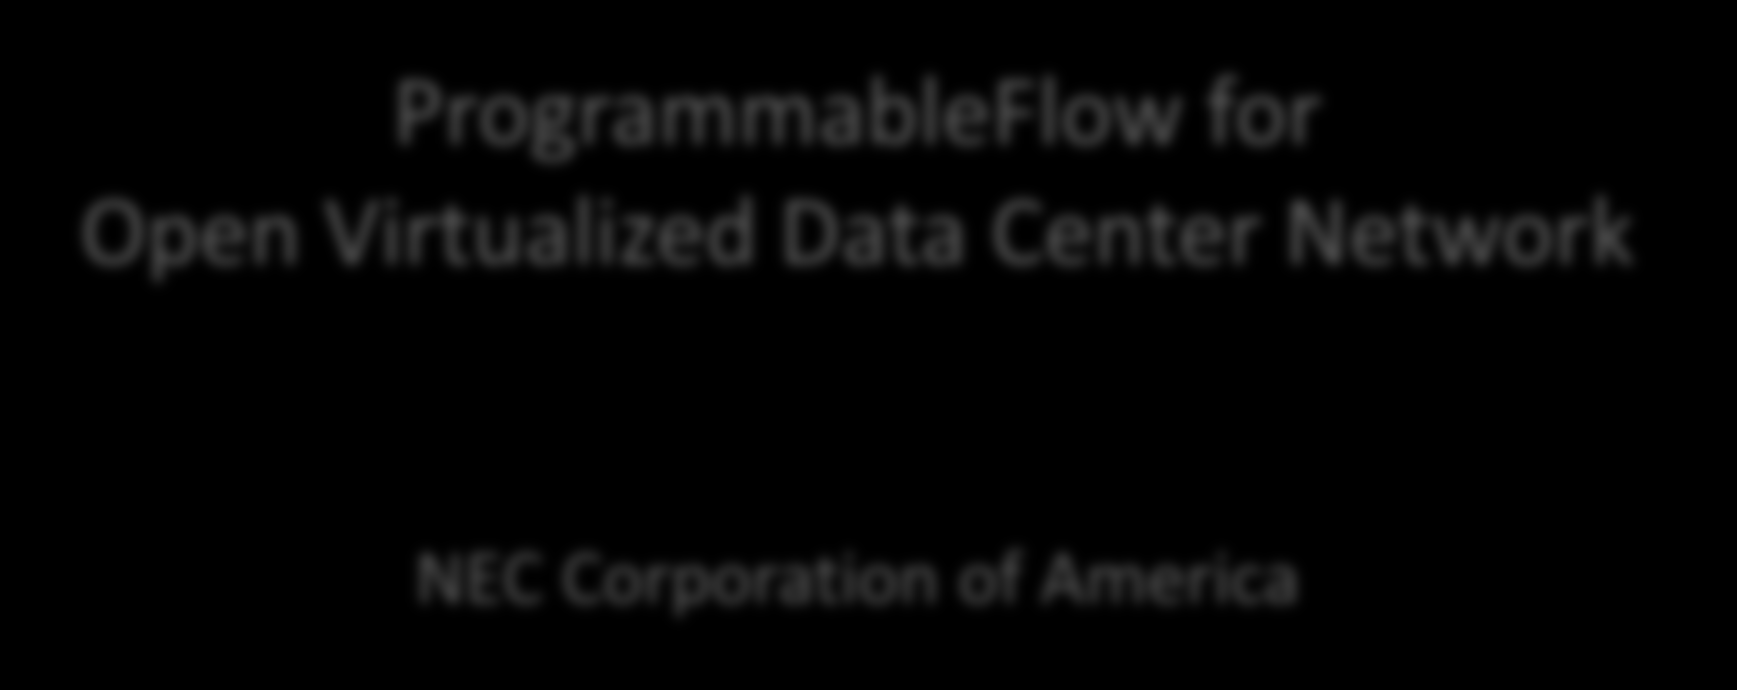 ProgrammableFlow for Open Virtualized Data Center